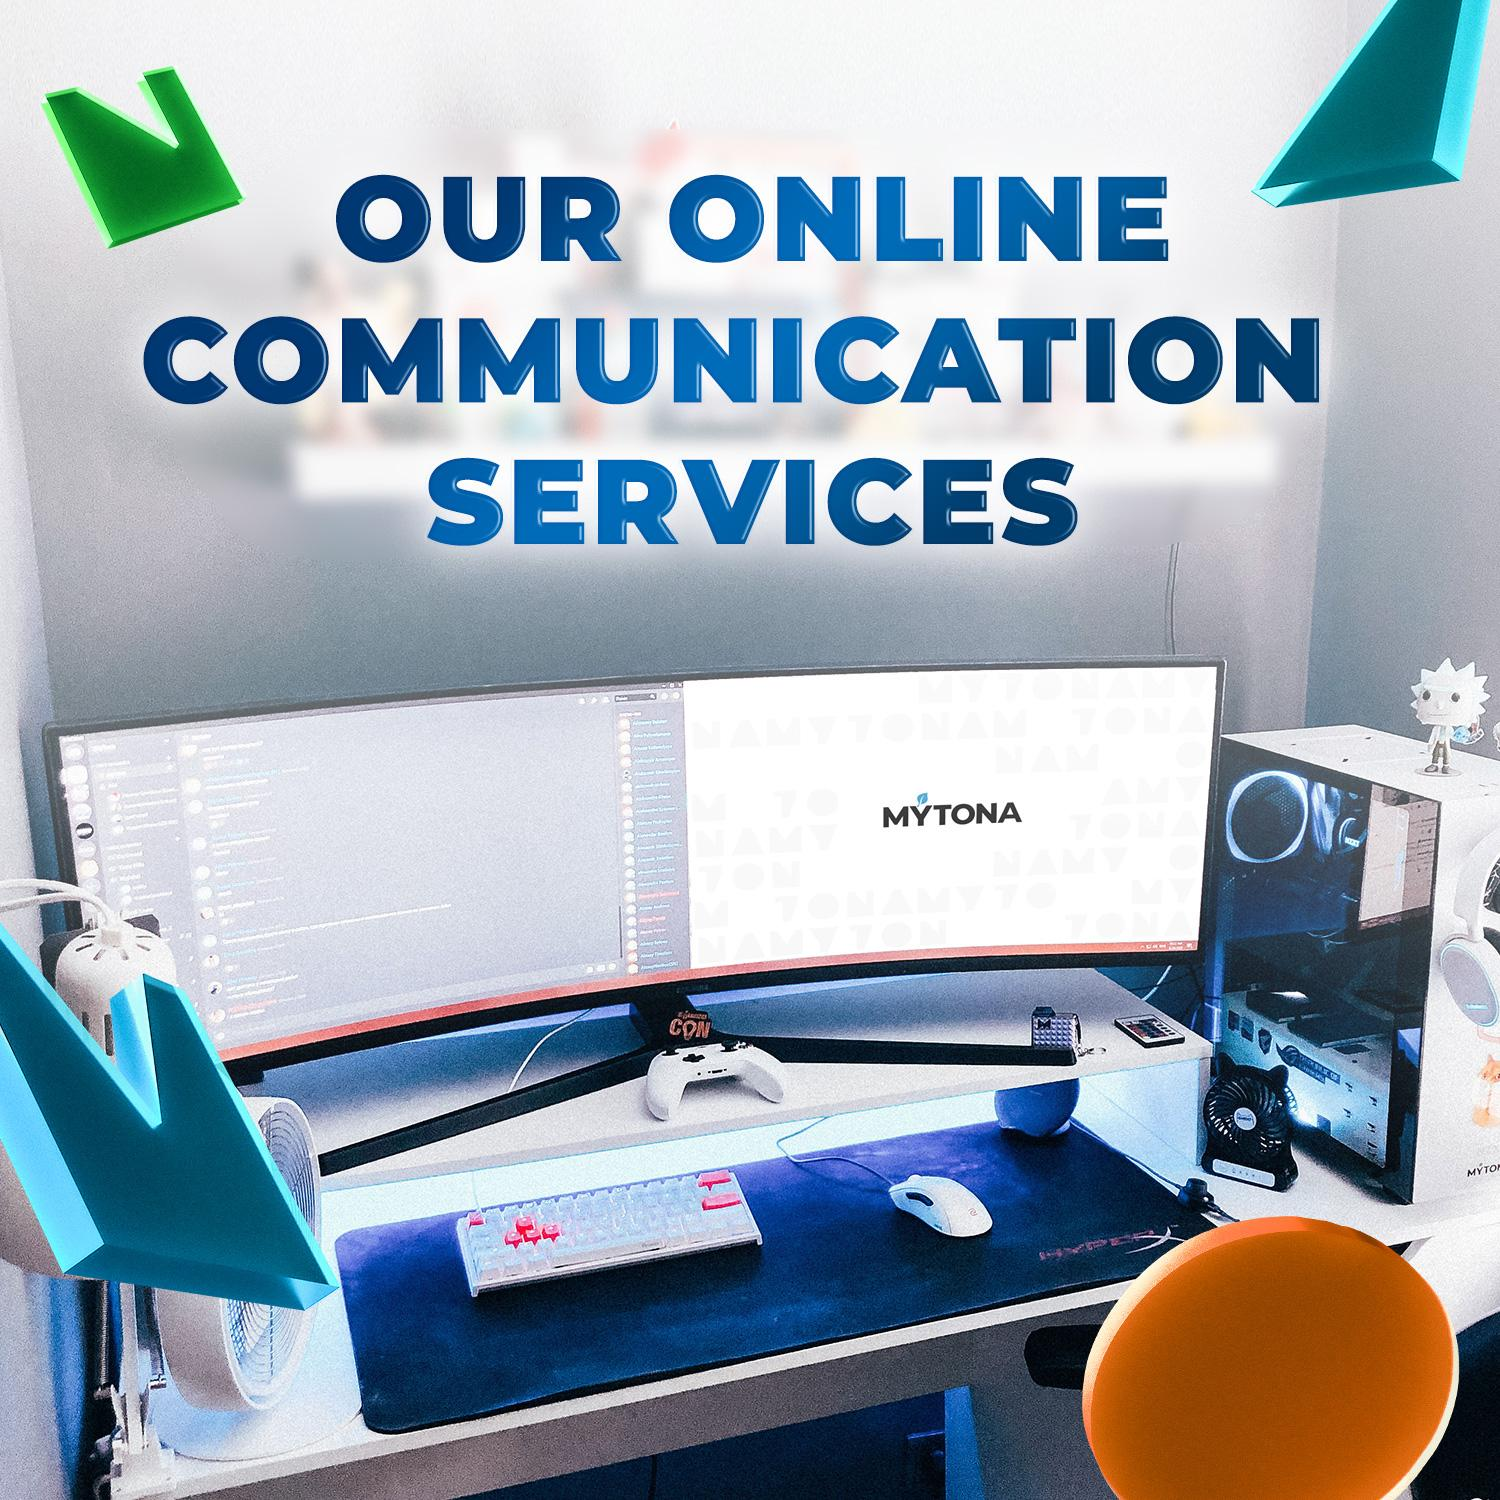 Choosing a Chat For Communication: How Does our Team of 900+ Mytonians Communicate Remotely?